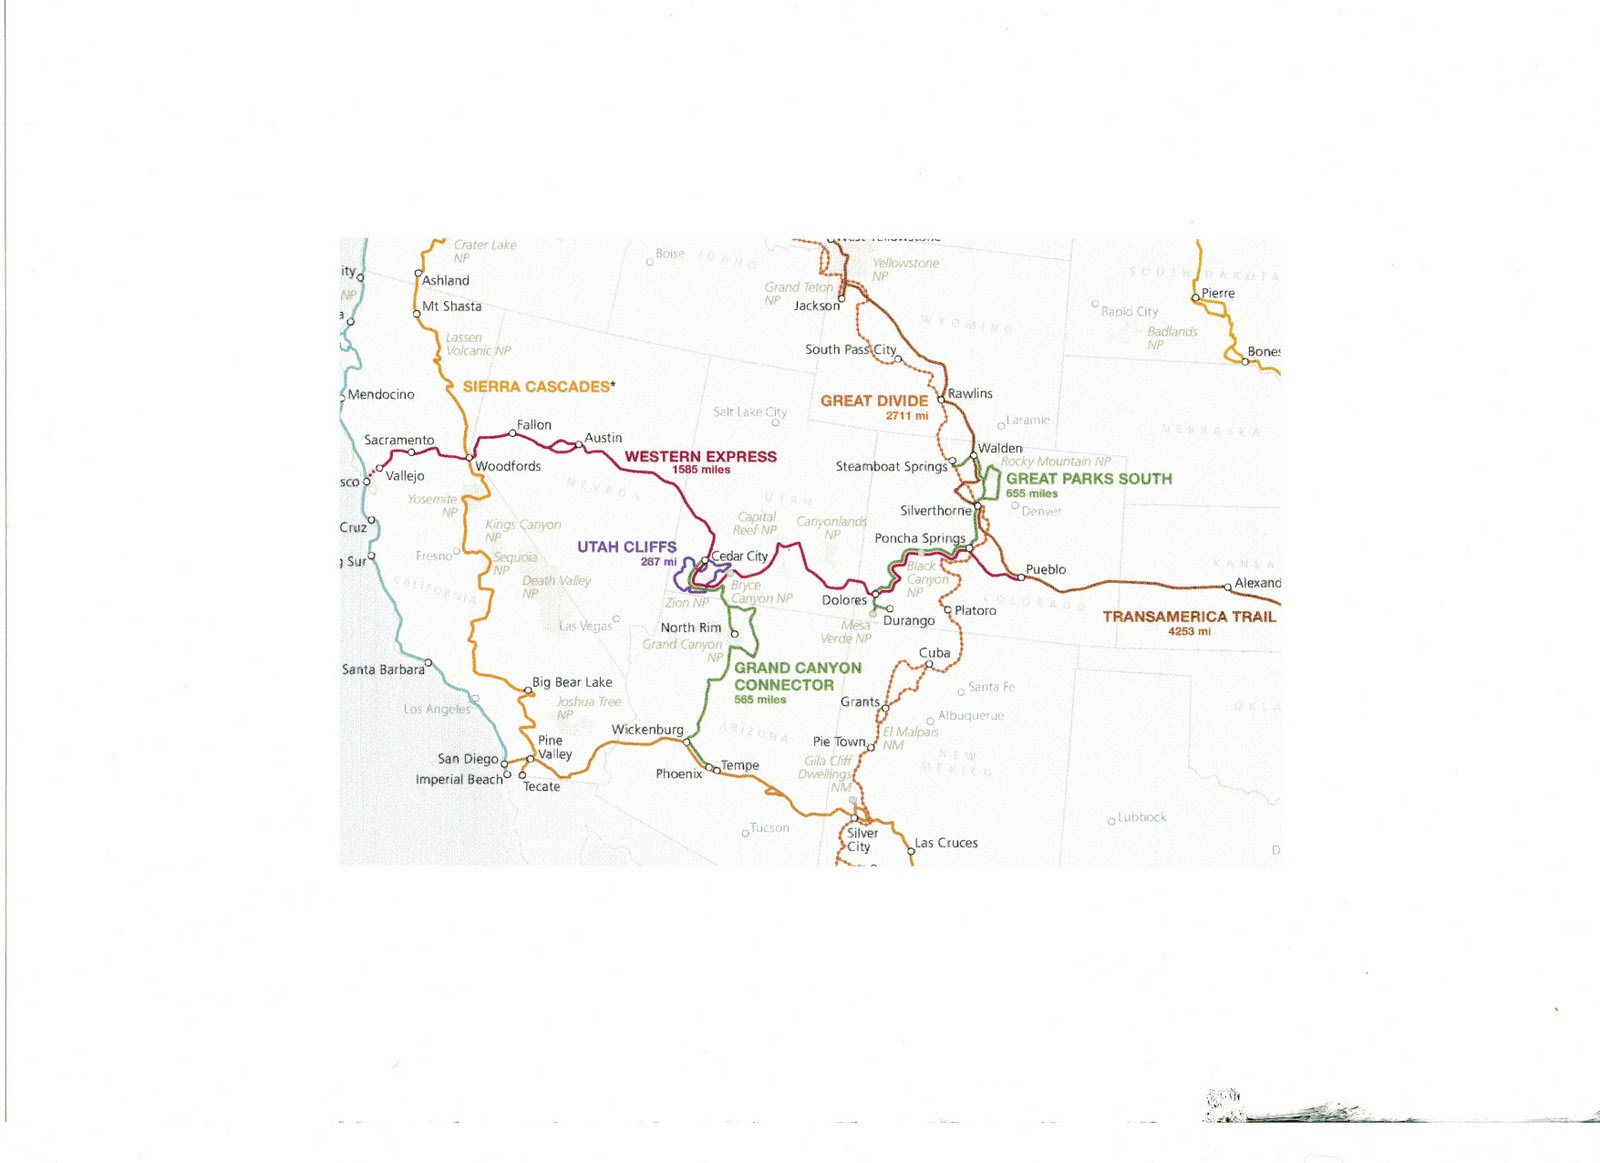 the route used was the american cycling associations grand canyon connector which links in cedar city with several legendary bicycle routes which cross